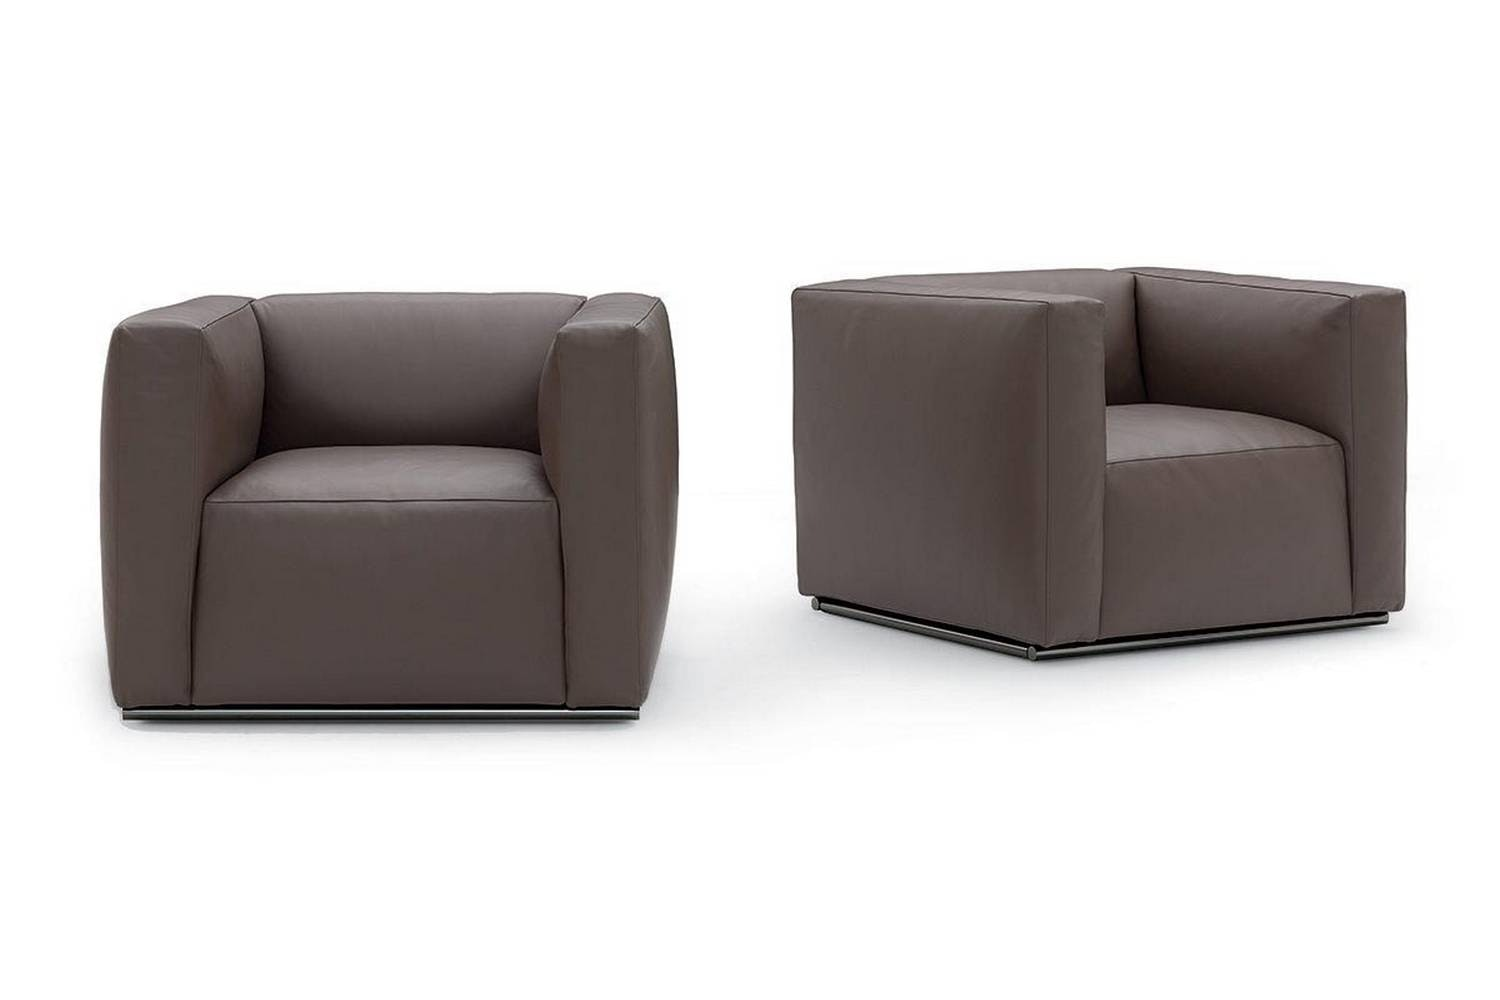 Shangai Armchair by Carlo Colombo for Poliform